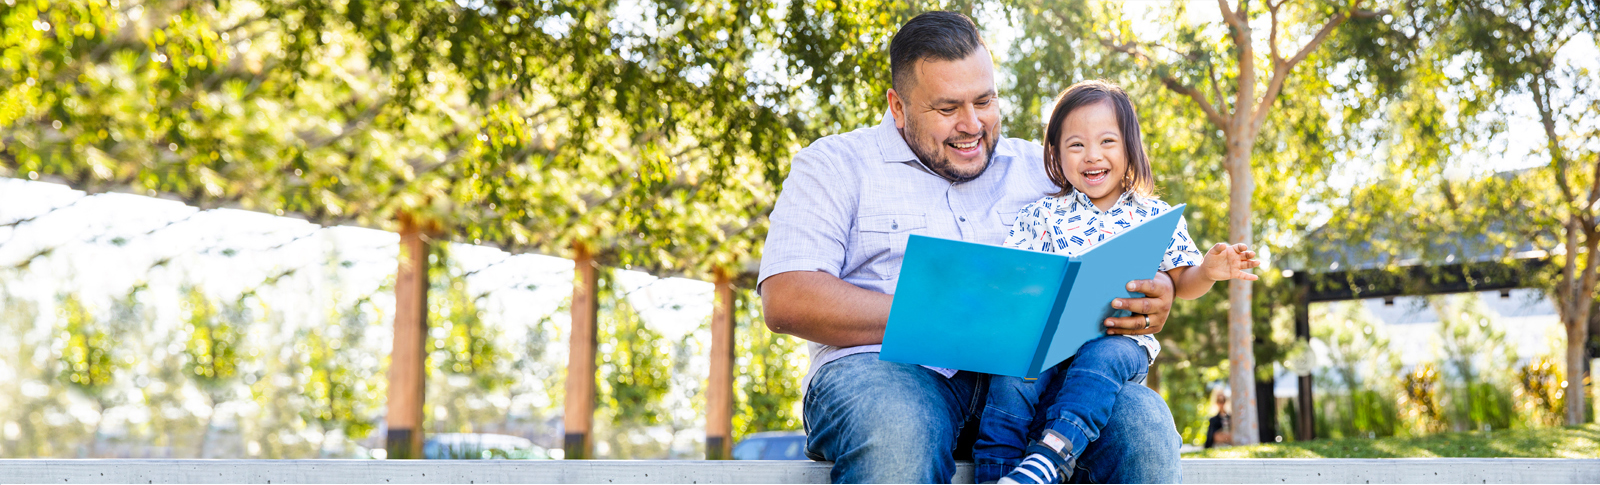 Dad sitting outside on a spring day in a park reading to his young daughter, who has Down Syndrome. Both are happy, and wearing blue jeans and short-sleeved shirts.